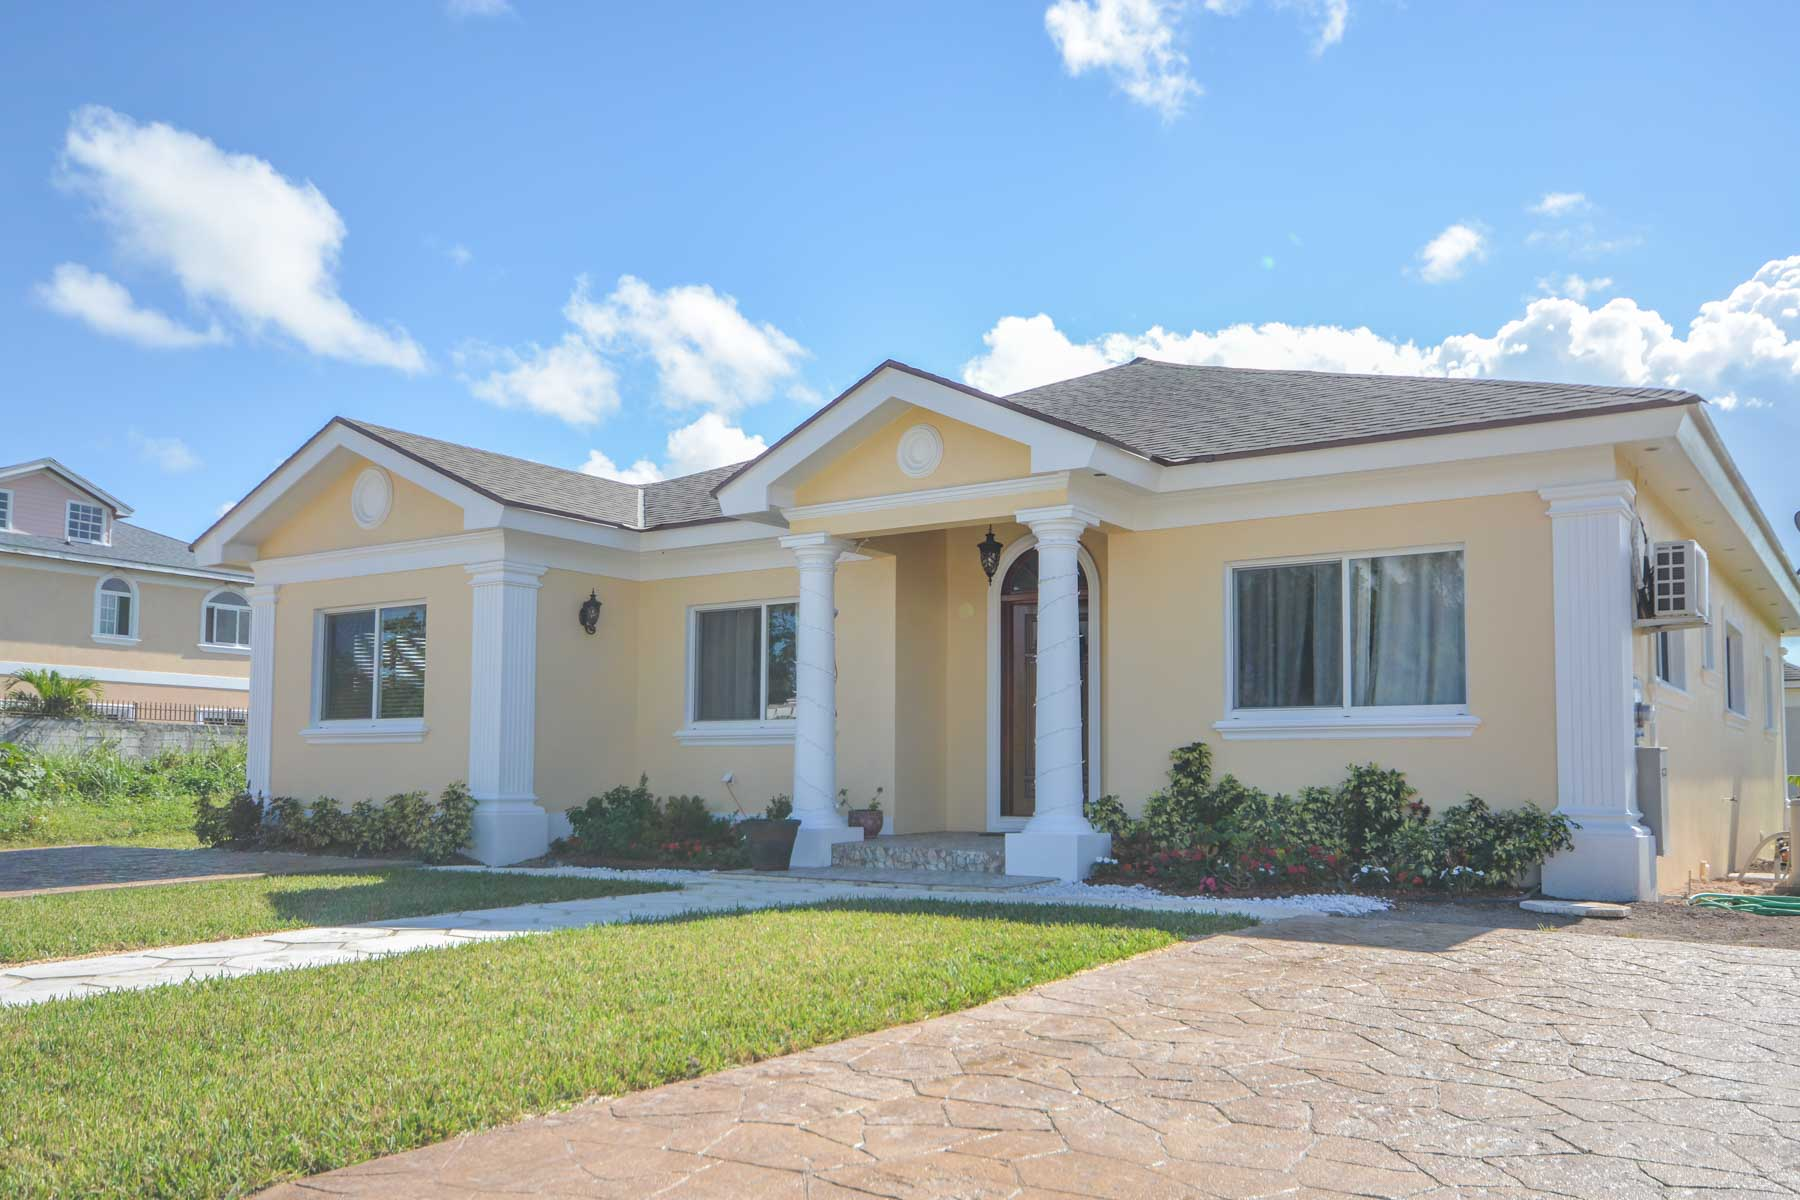 Single Family Home for Sale at Clean Contemporary Casa - MLS 32144 West Winds, West Bay Street, Nassau And Paradise Island Bahamas